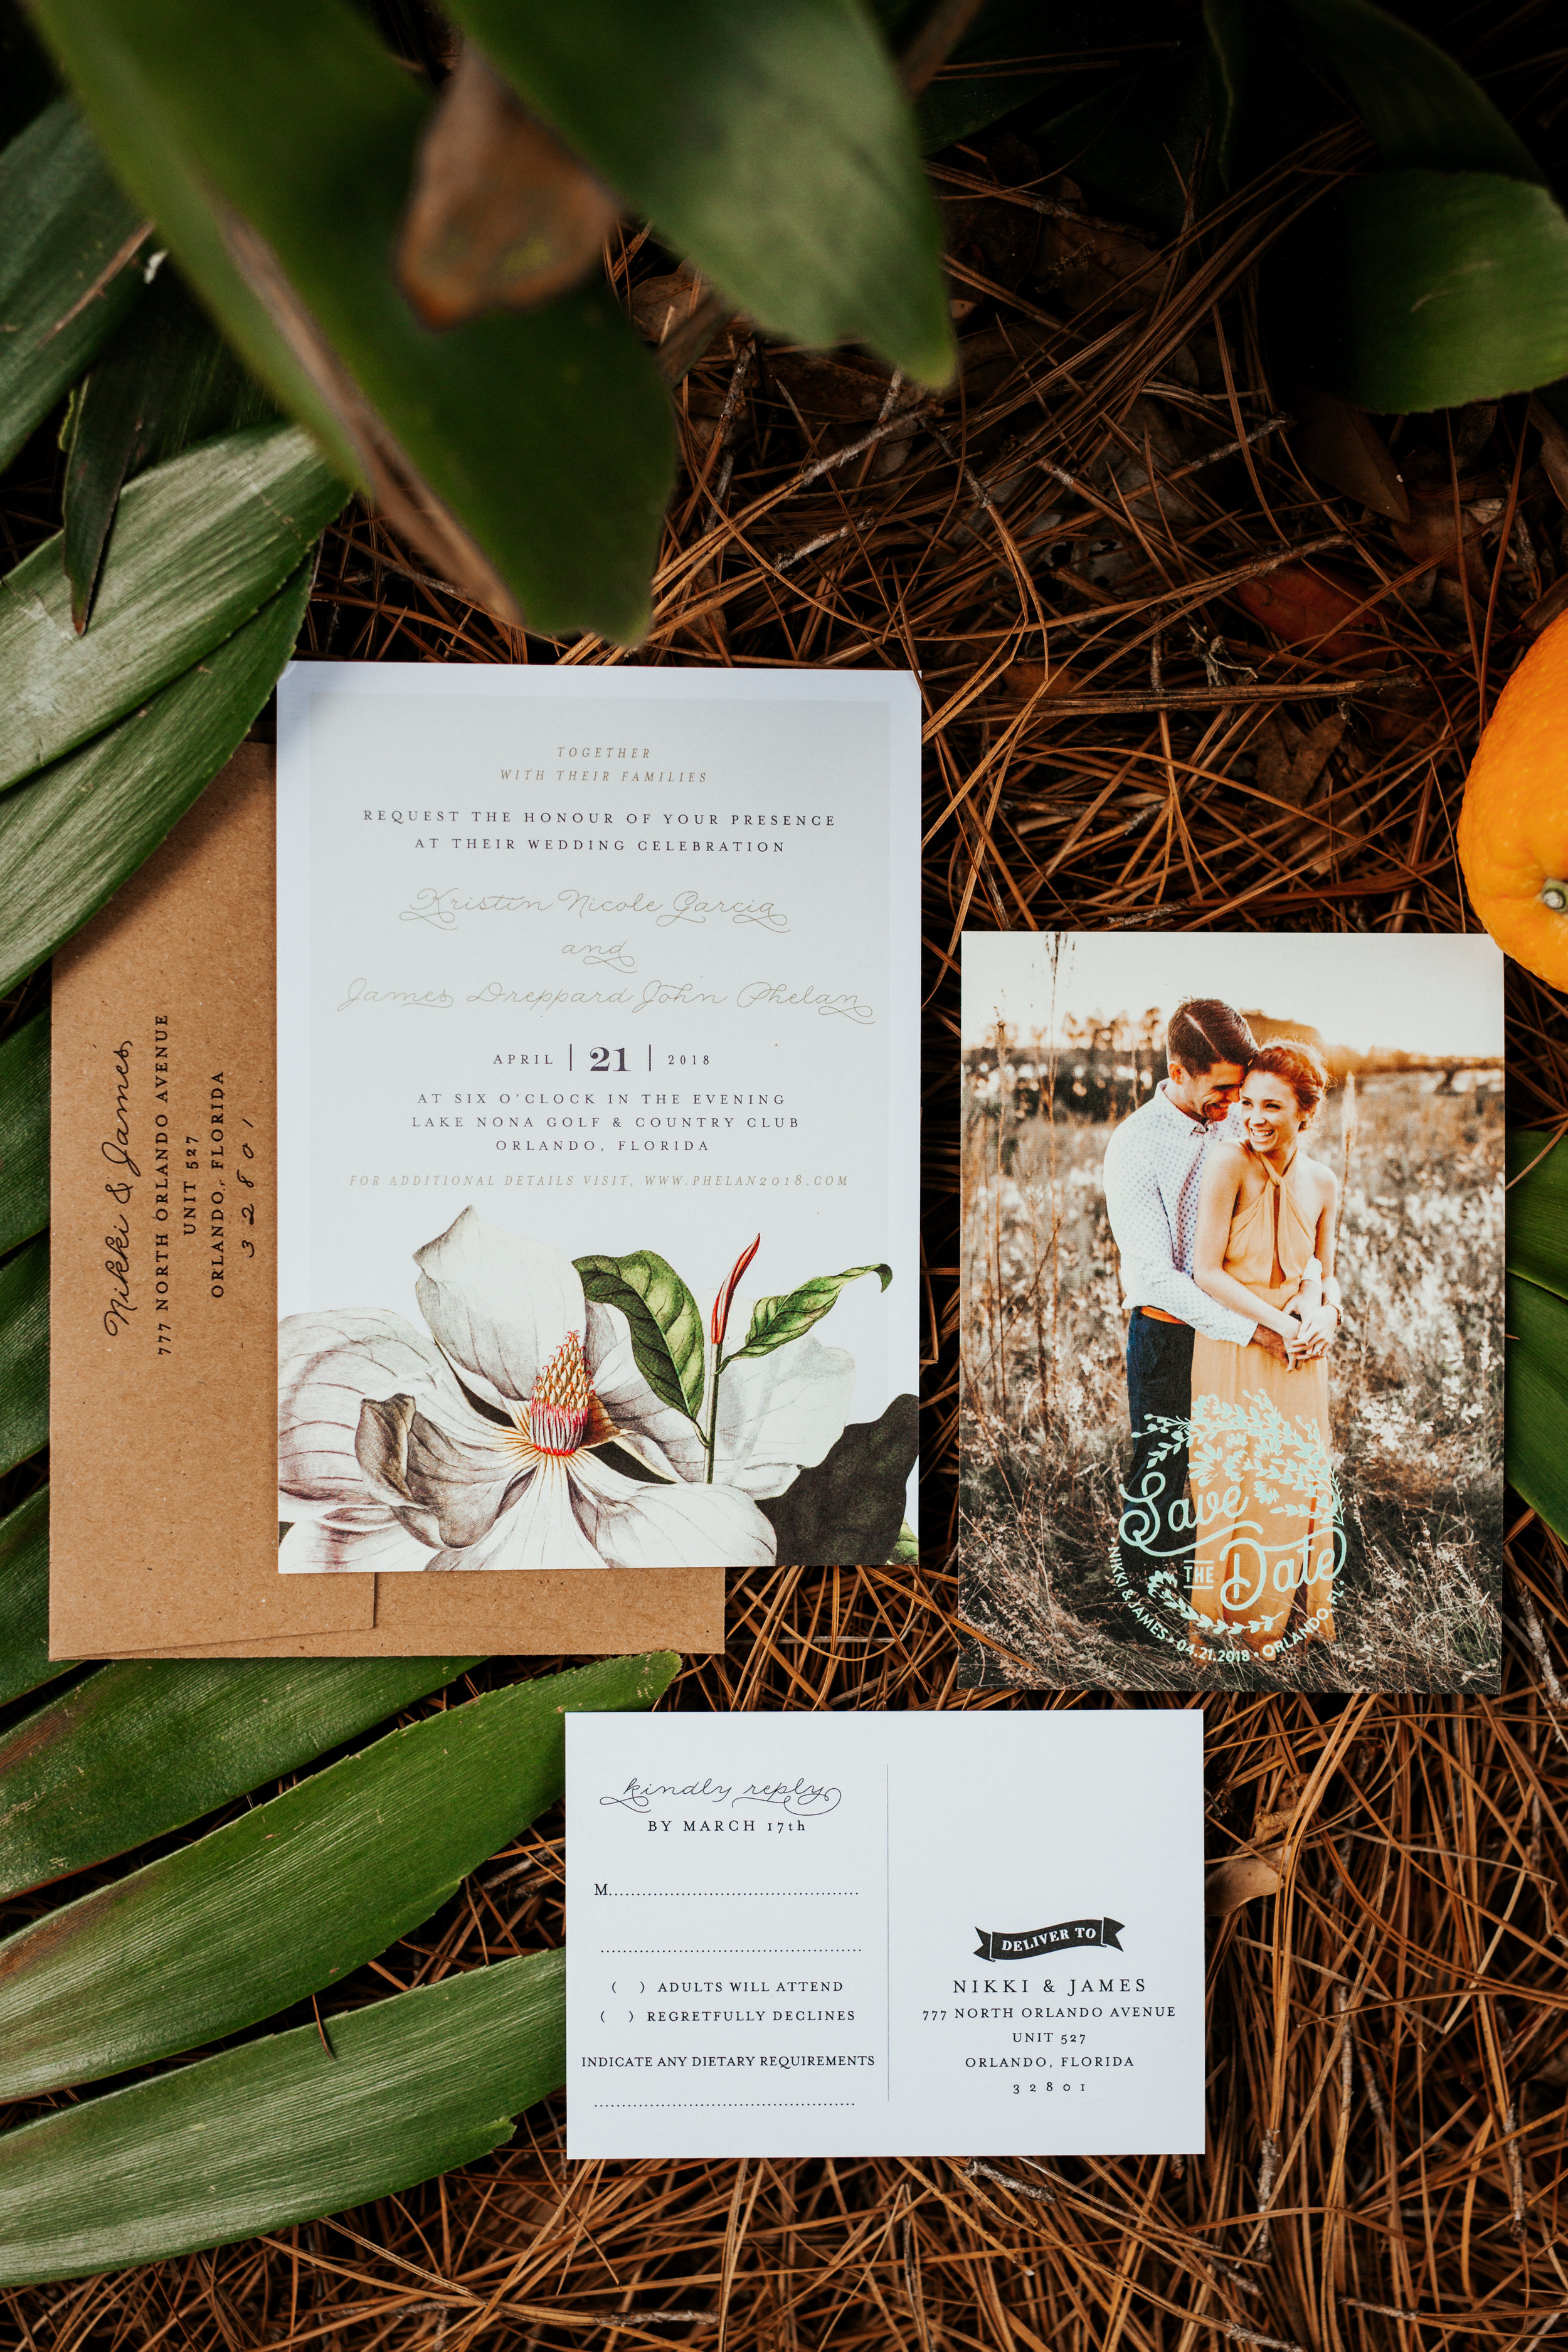 Magnolia Stationary for an Old Florida Style Wedding in Orlando, Florida  Orlando Wedding Planner Blue Ribbon Weddings  Orlando Wedding Photographer 28 North Photography  Wedding Ceremony & Reception at Lake Nona Golf & Country Club